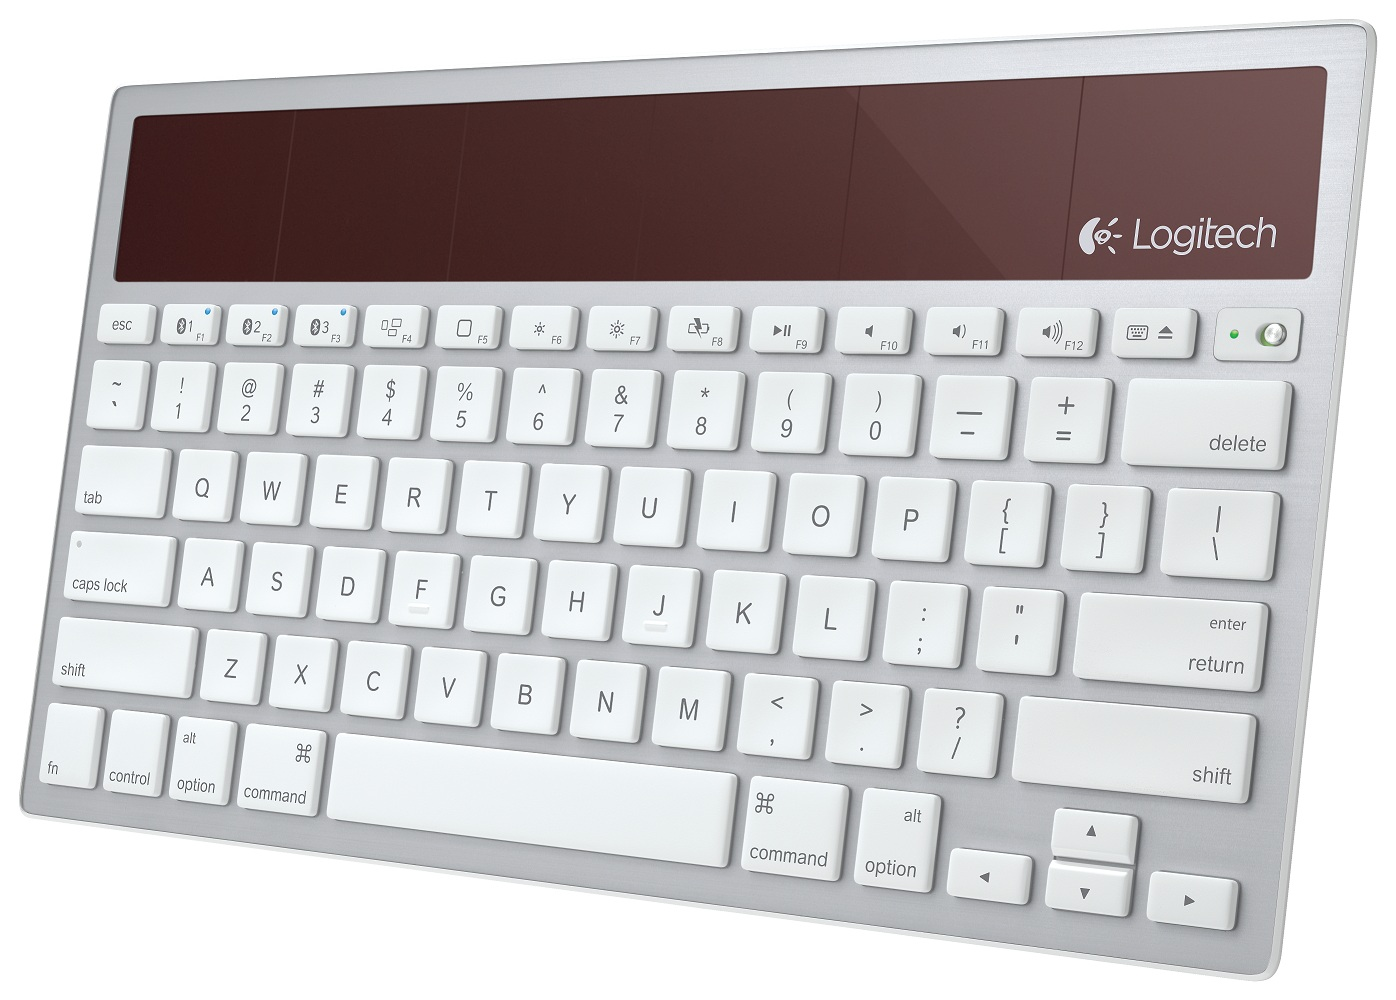 The Logitech Wireless Solar Keyboard